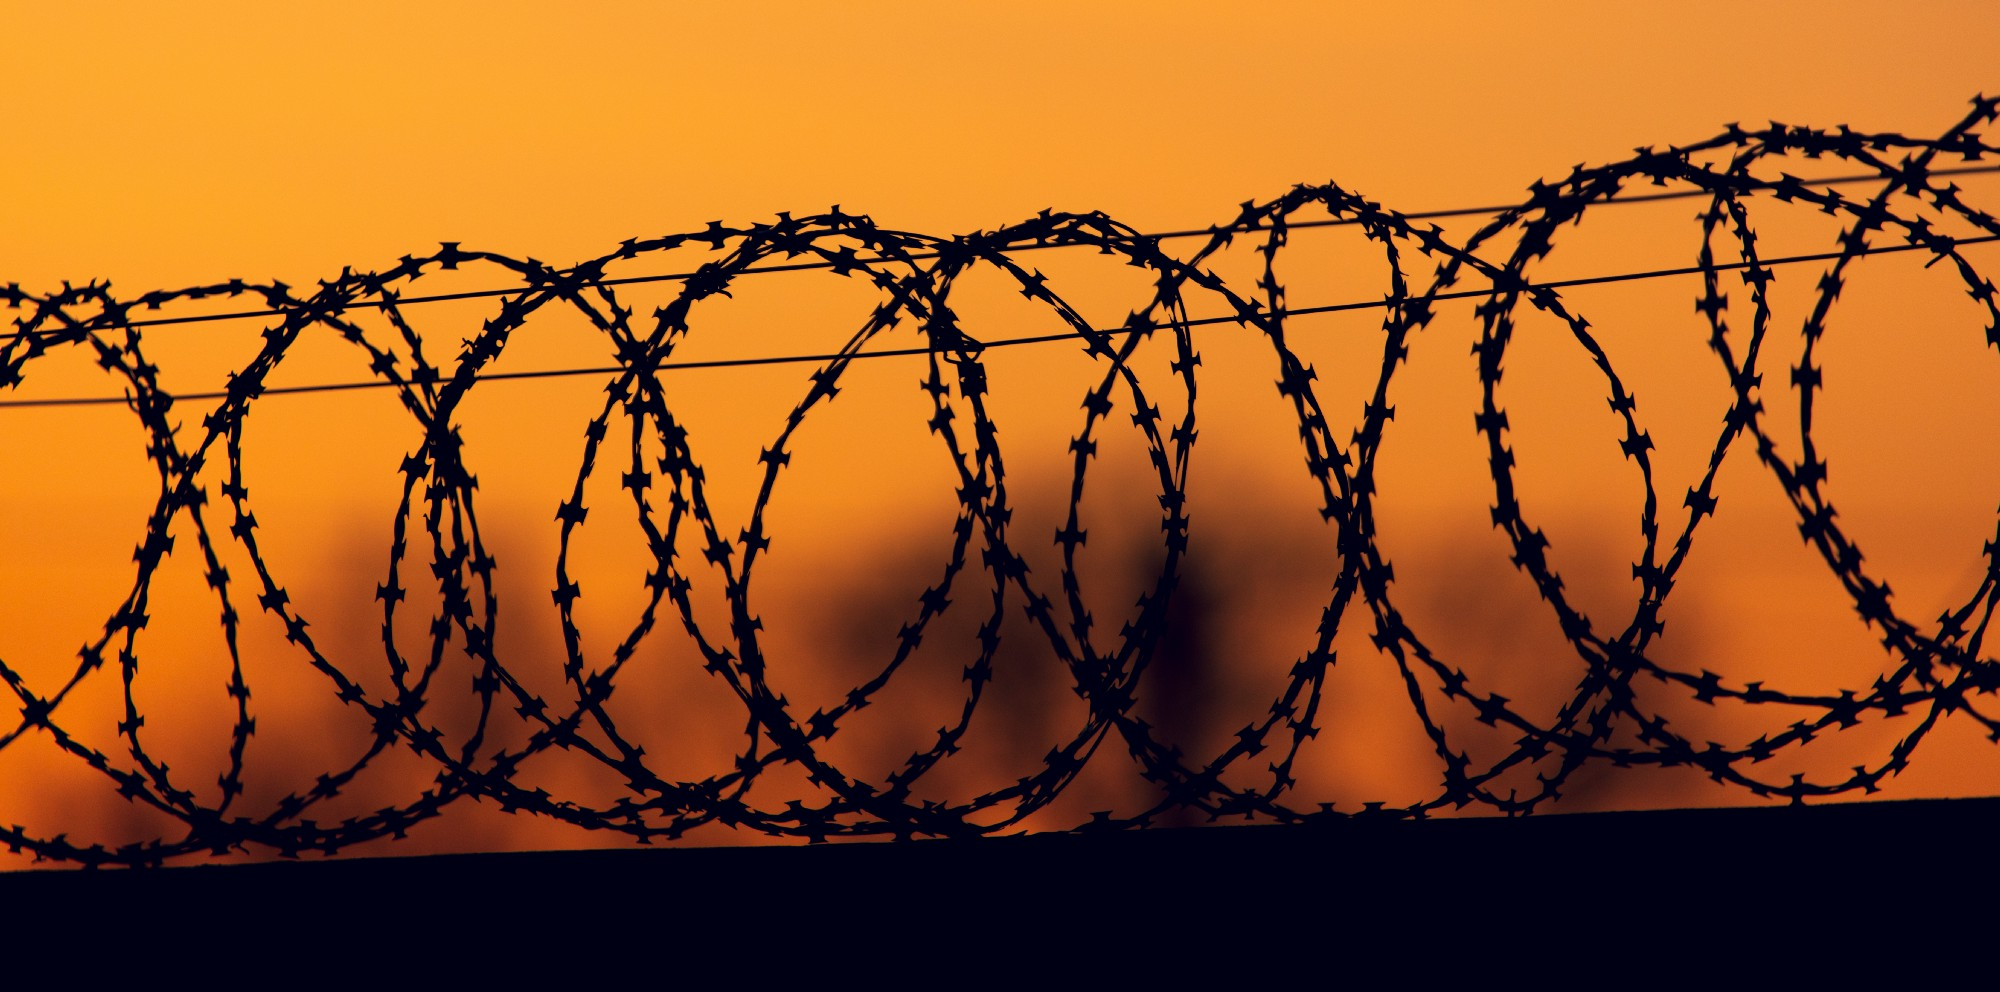 image of barbed wire coils in the sunset